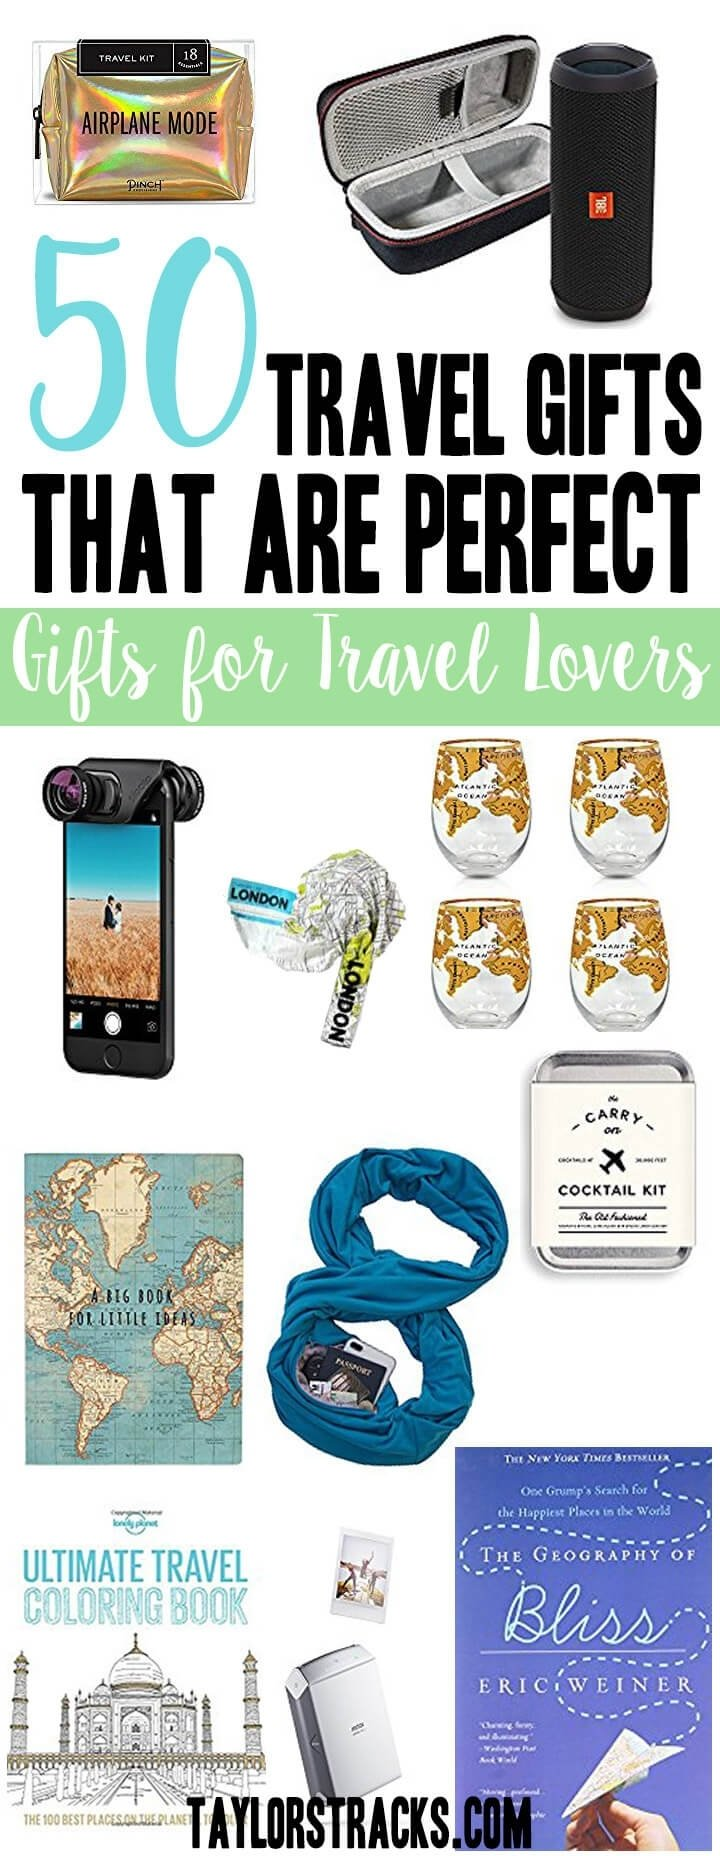 10 Fabulous Travel Gift Ideas For Women 50 travel gifts that are perfect gifts for travel lovers taylors 1